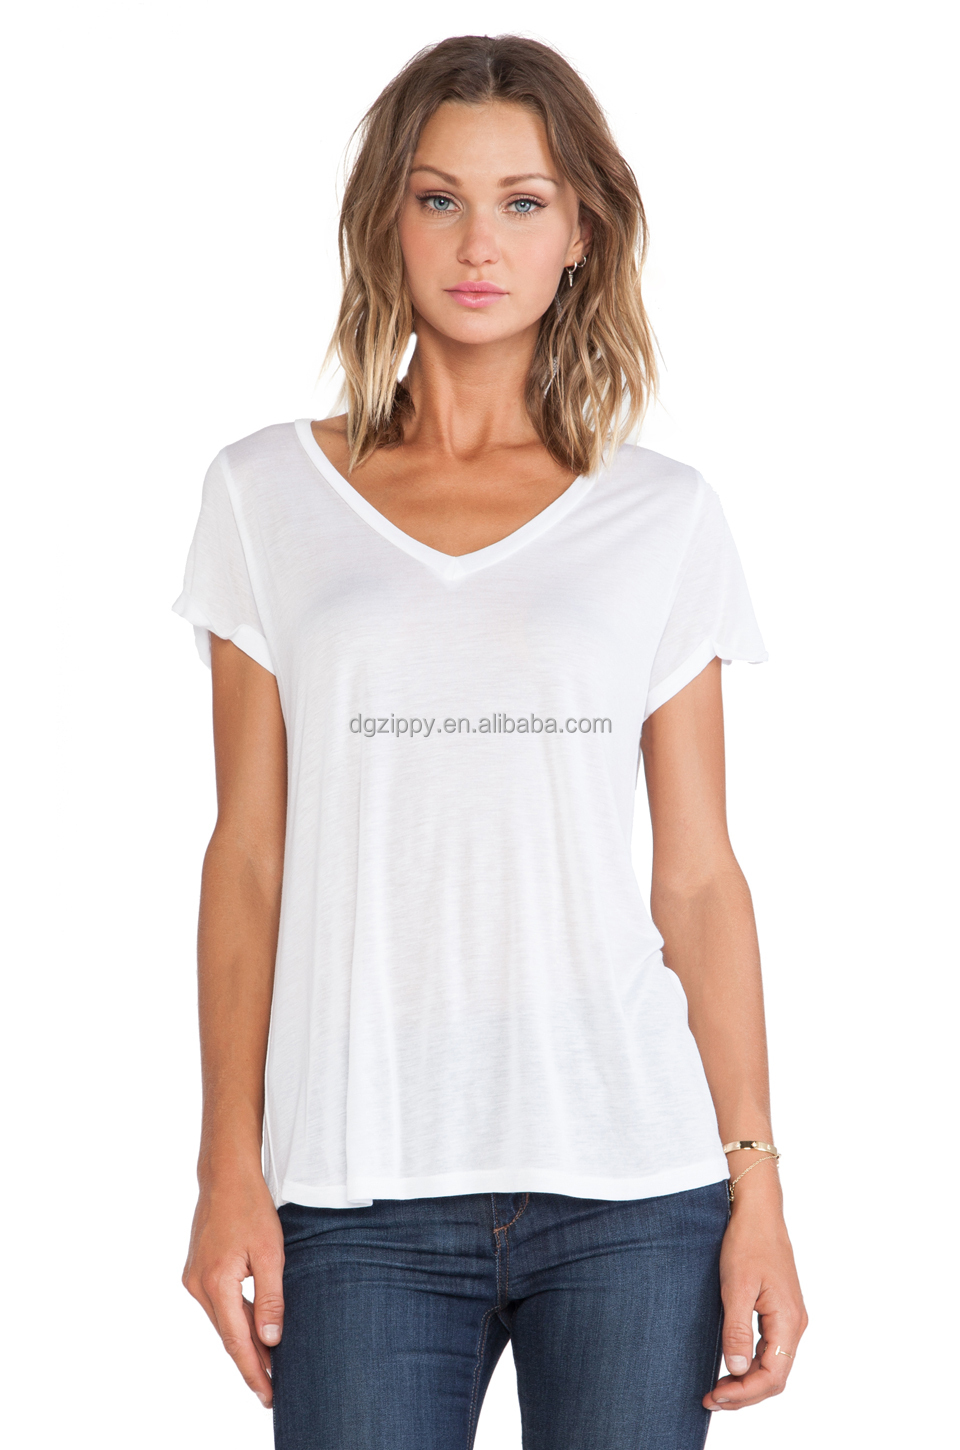 Women t shirt v neckline wholesale blank t shirts with for Bulk quality t shirts